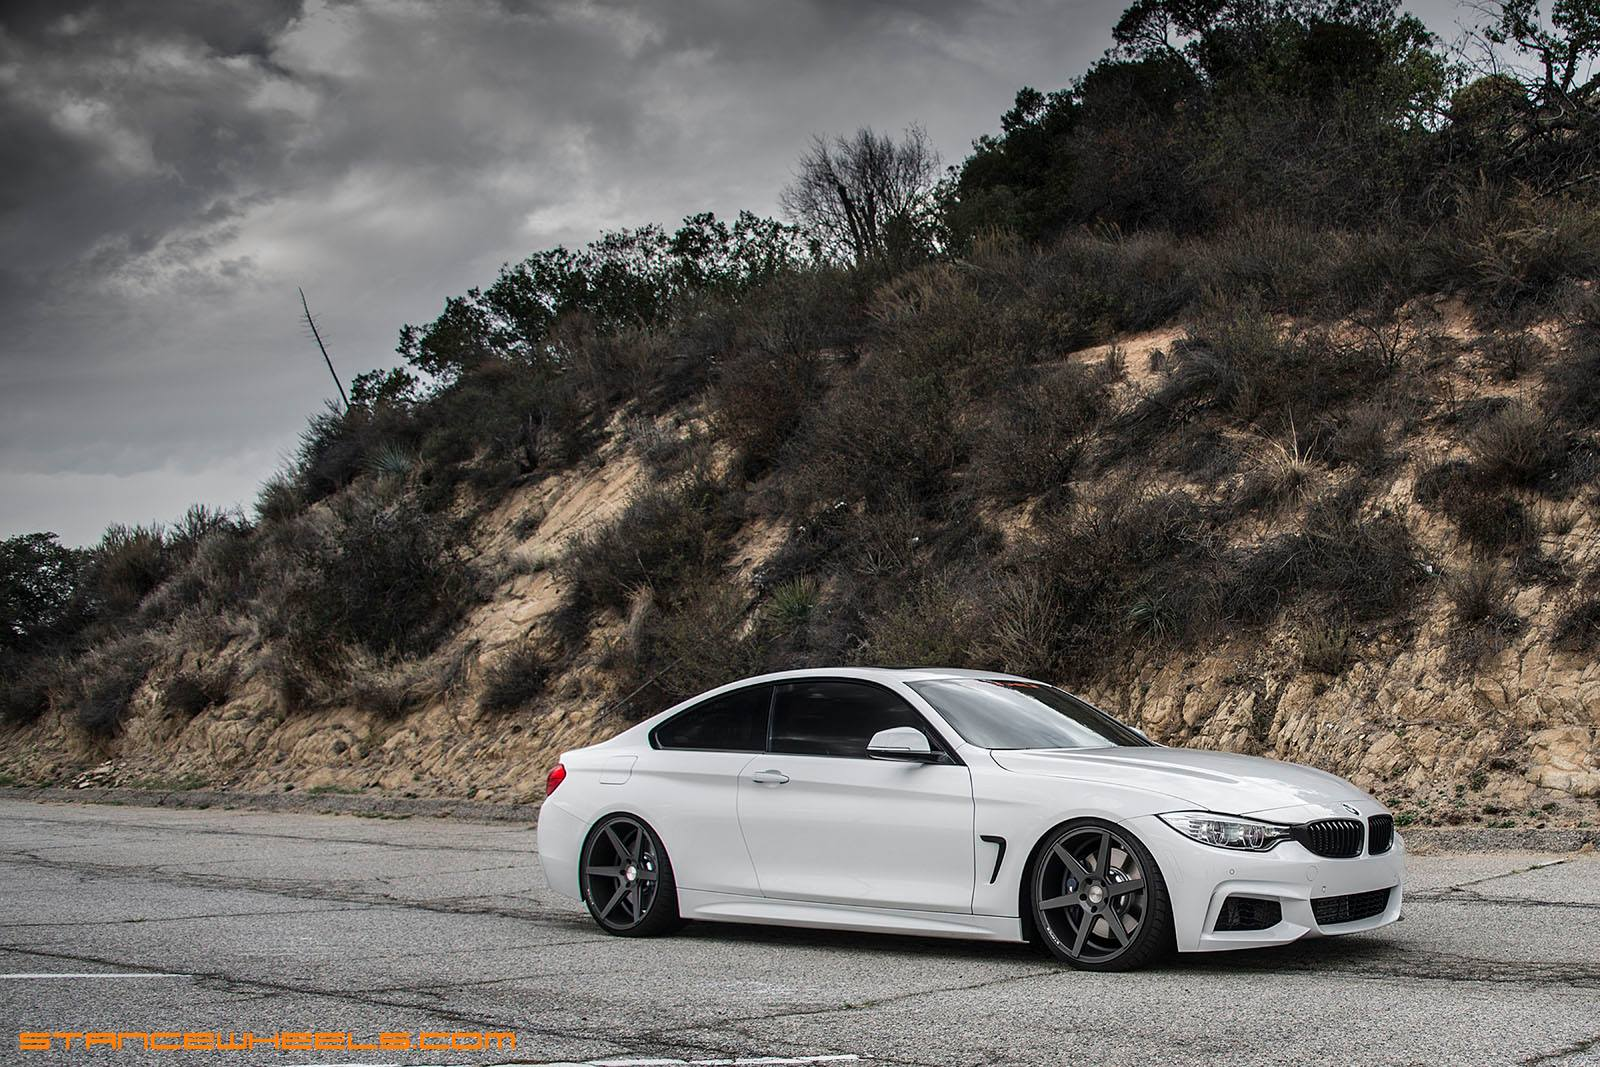 Stance Wheels SC-6 Slate Grey on BMW 435